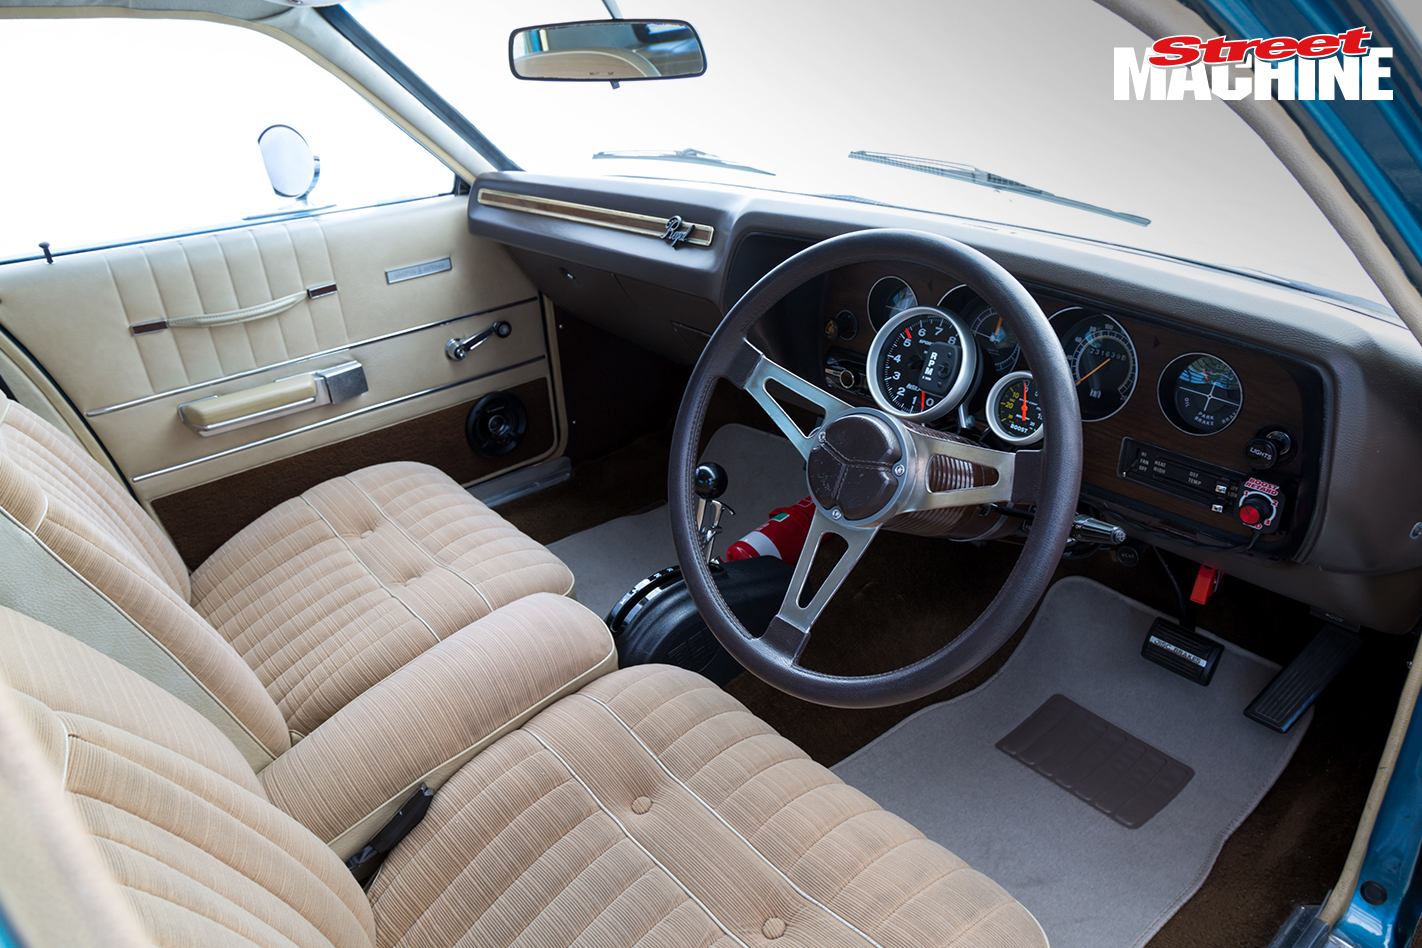 Chrysler Valiant Regal Interior 6